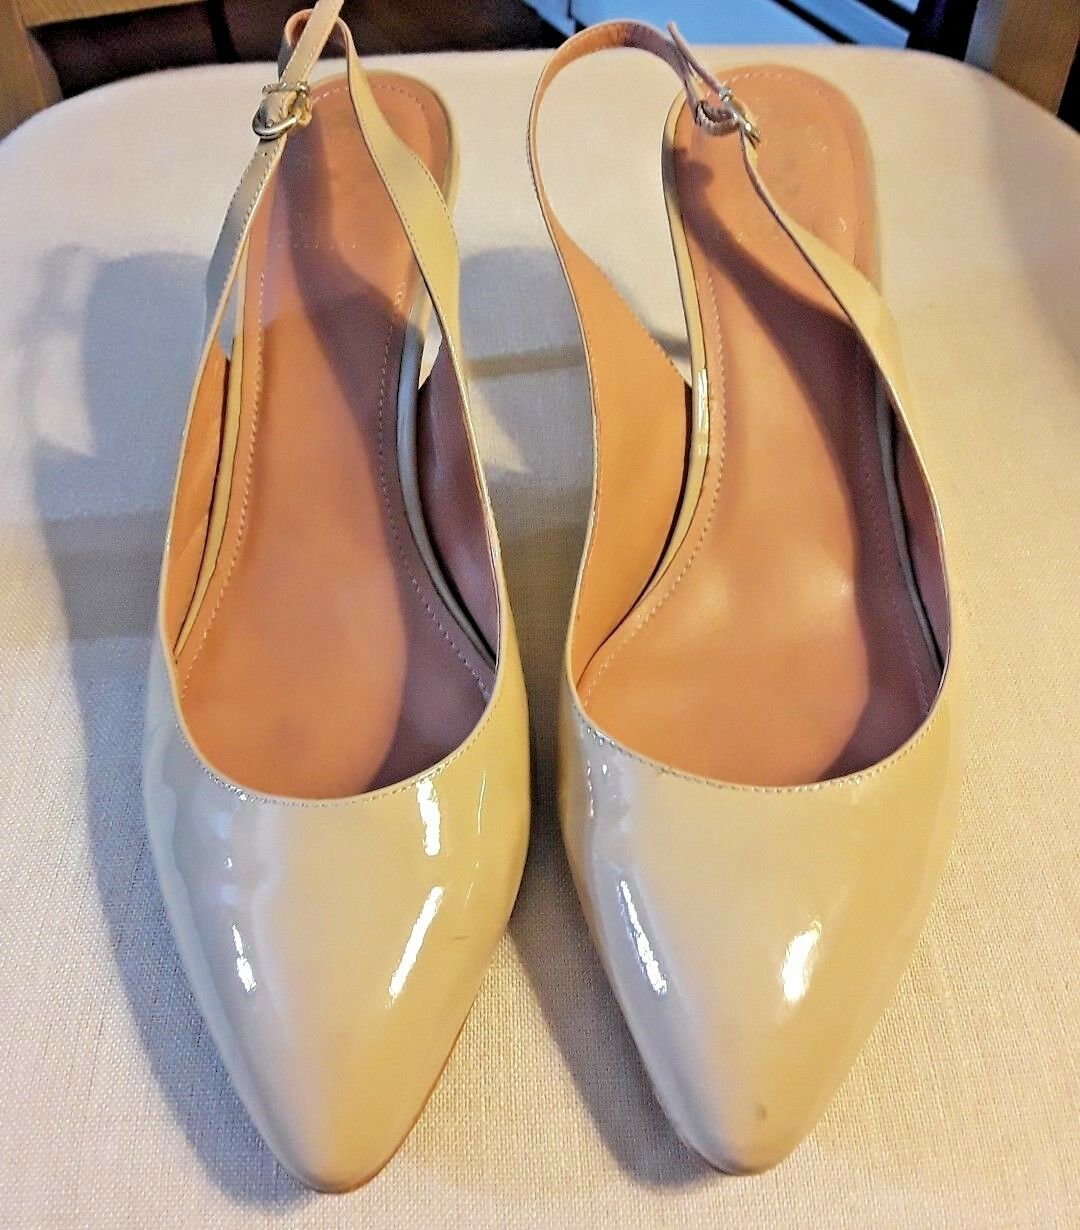 Vince Camuto Tan Nude Patent Leather Pointed Toe Slingback Heels Size 10